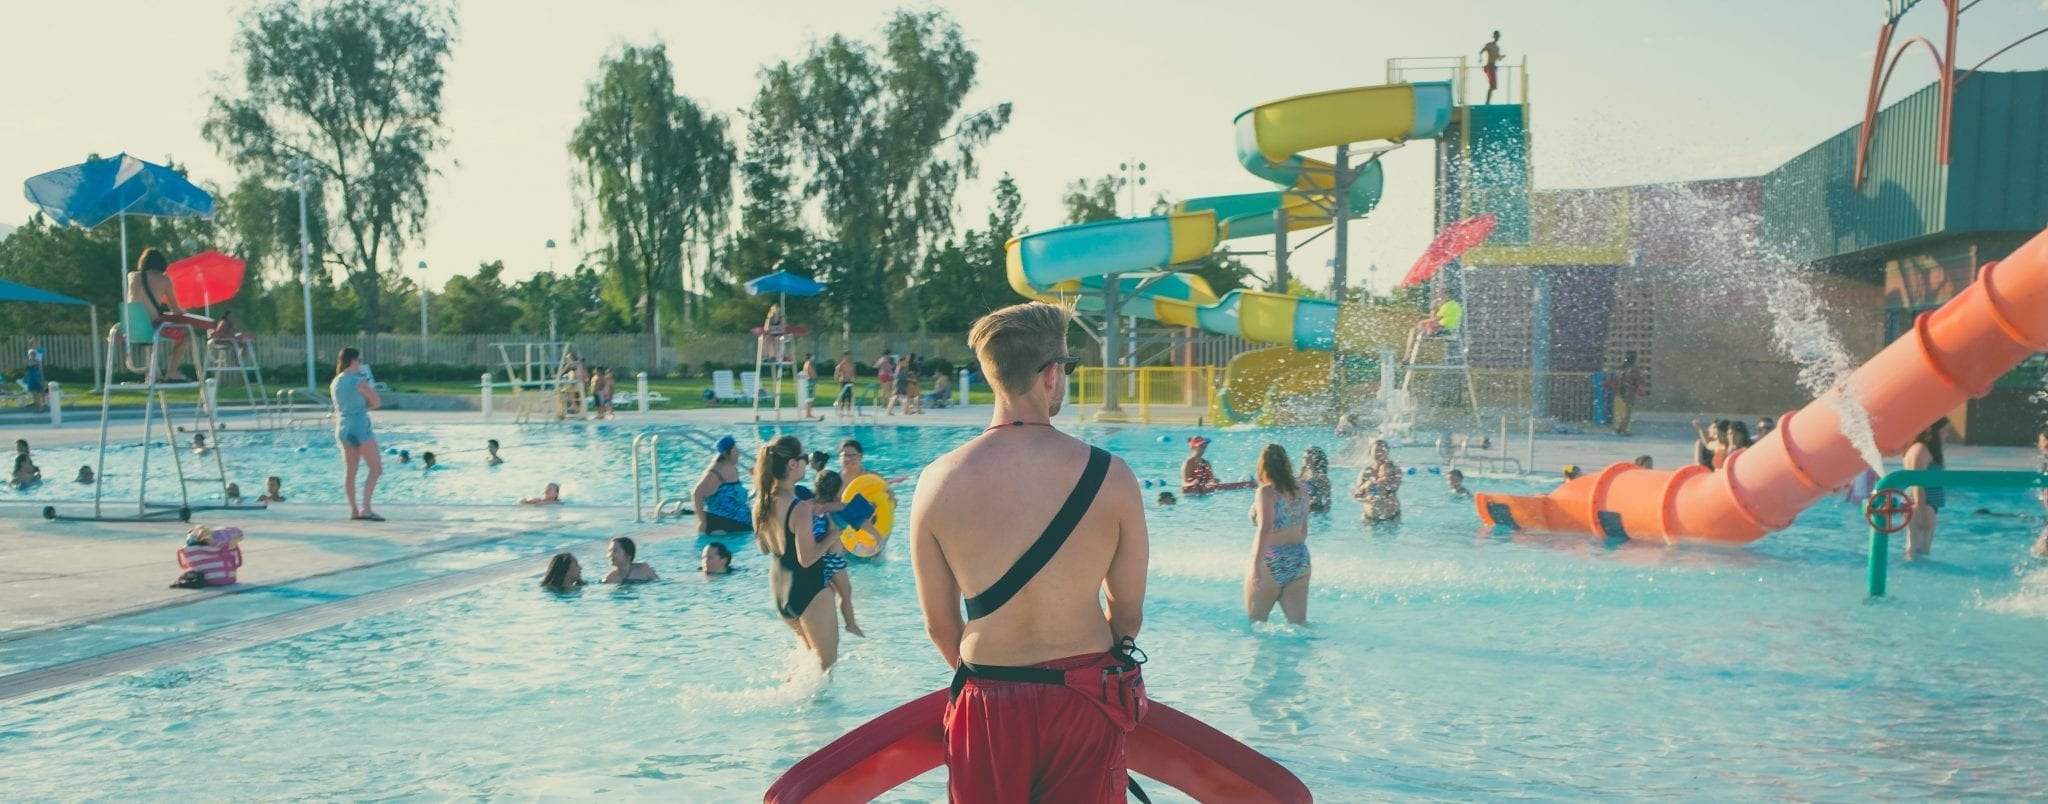 Waterpark Co-Owner Indicted On Reckless Murder Charges